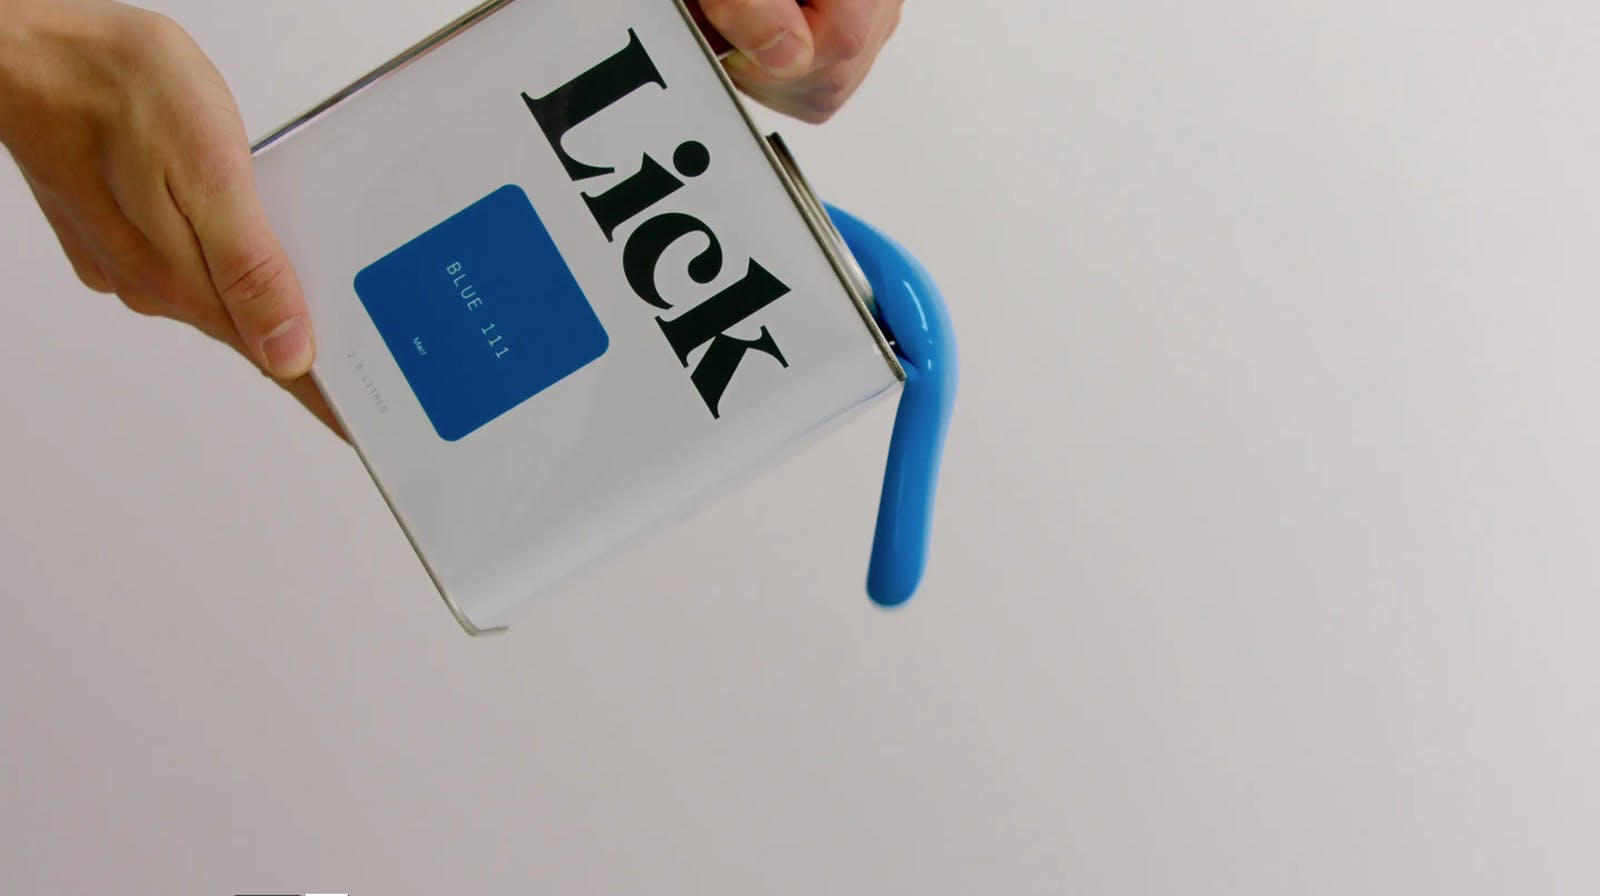 Tin of Lick Blue 111 paint being poured by hand